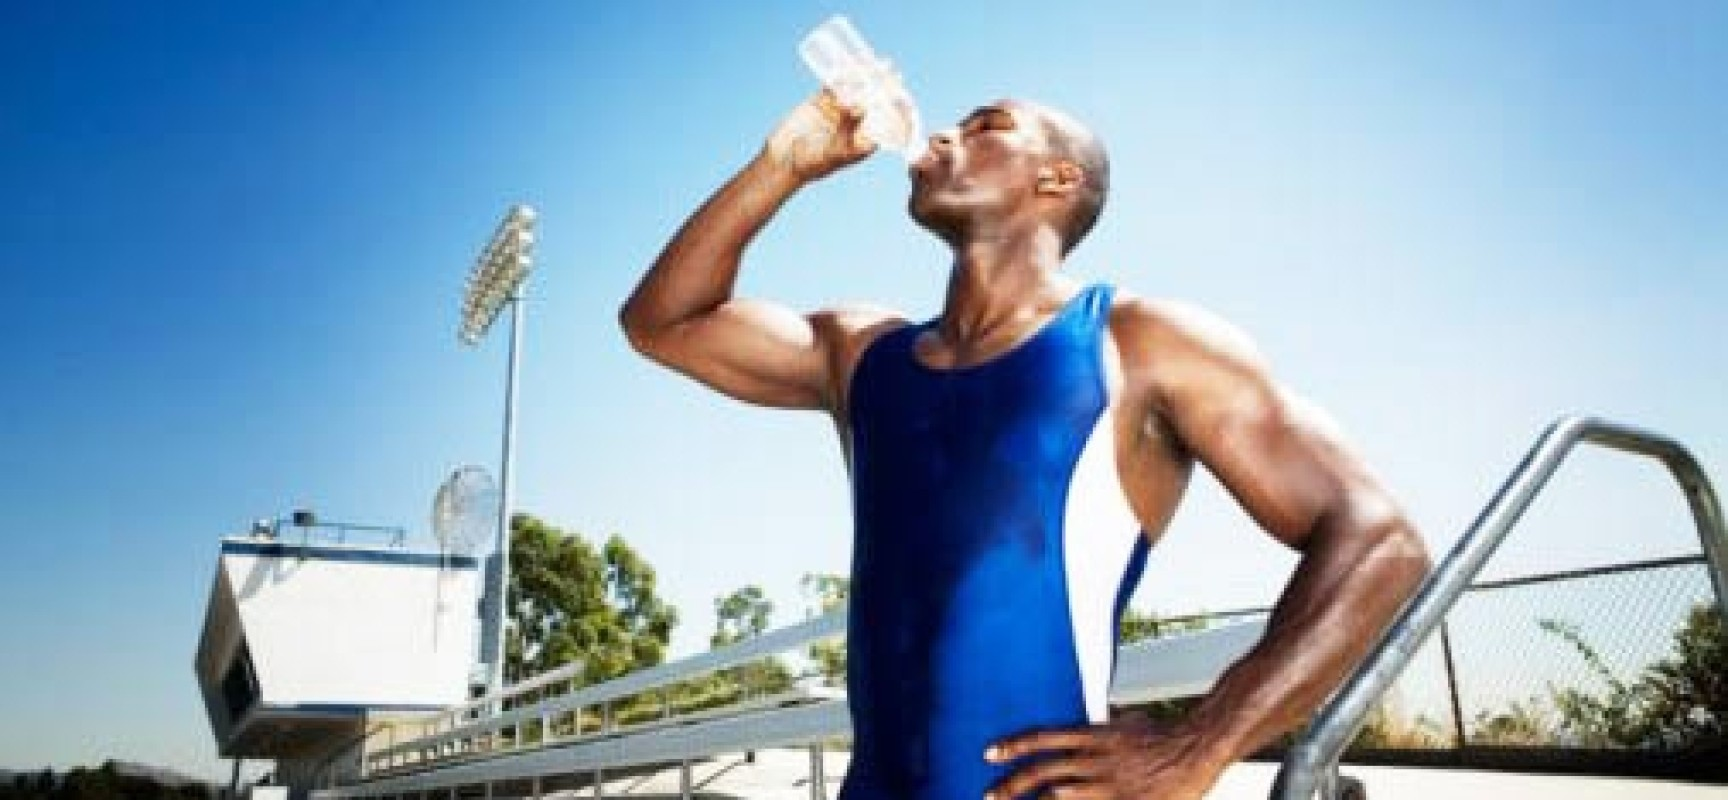 How to improve your sports performance